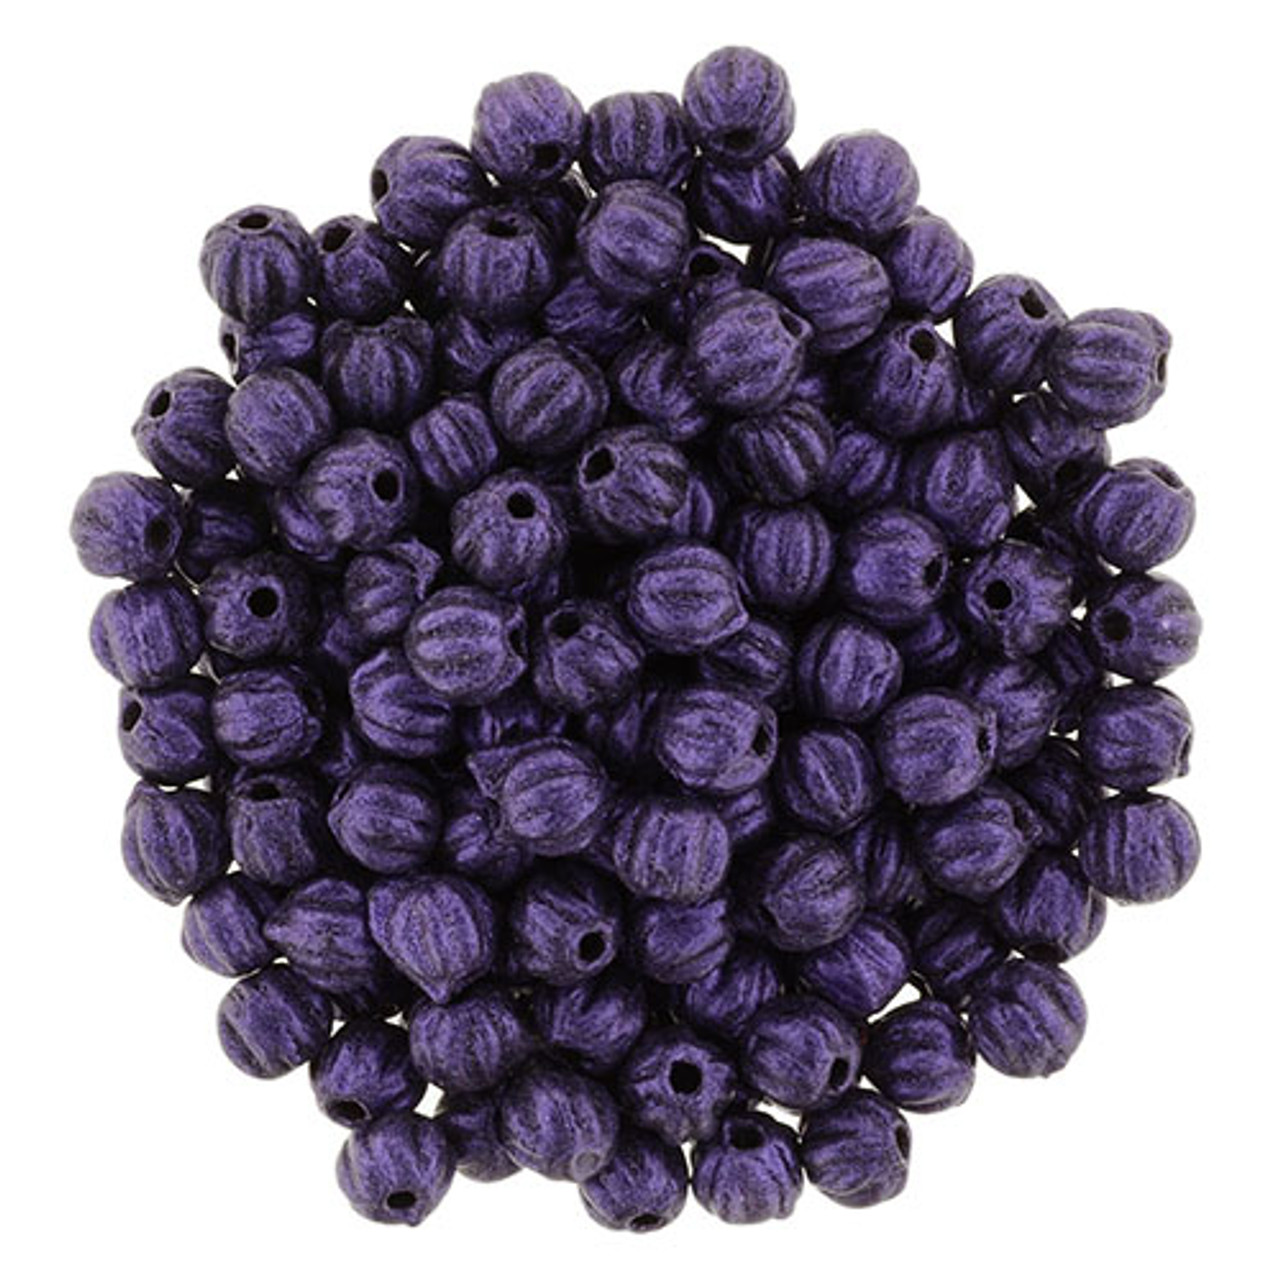 3mm Melon - Metallic Suede Purple (100 Beads) 03-79021